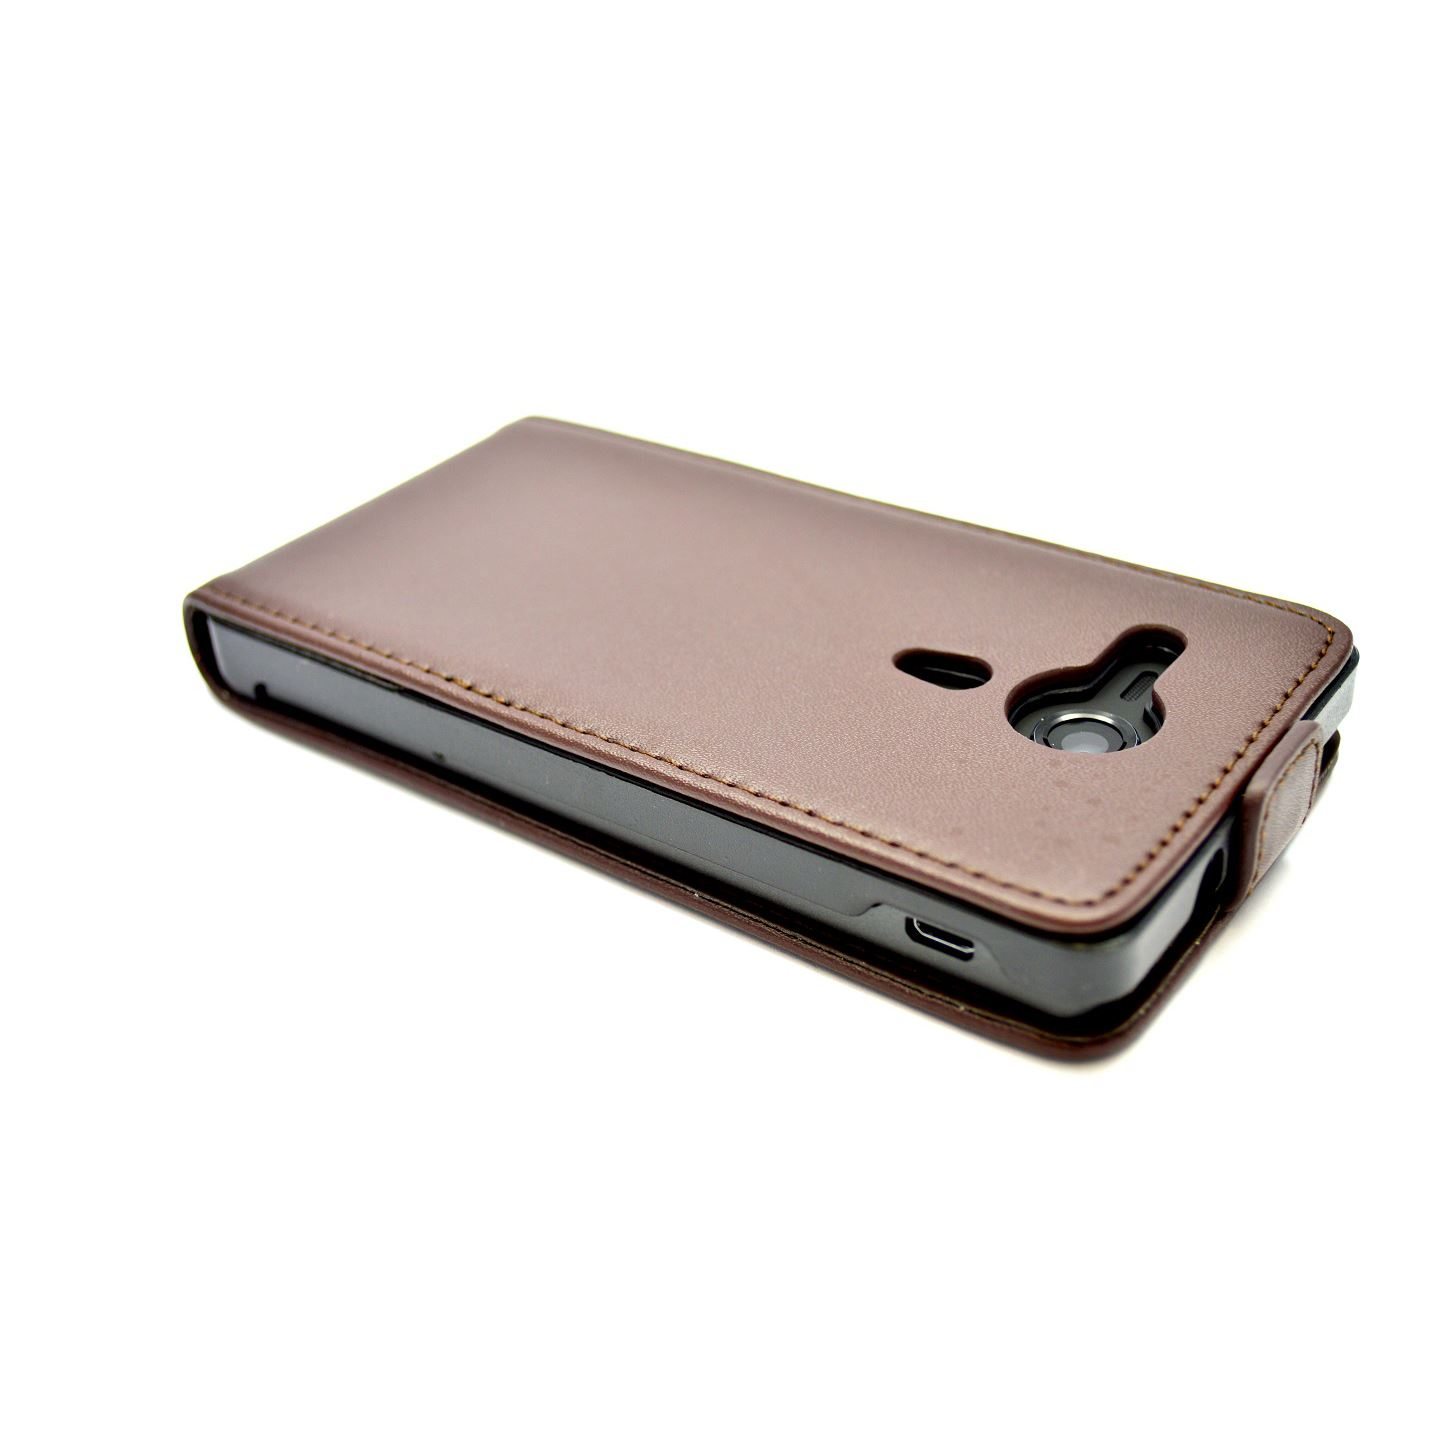 ... about SNAKEHIVEu00ae Premium Leather Flip Case Cover for Sony Xperia SP